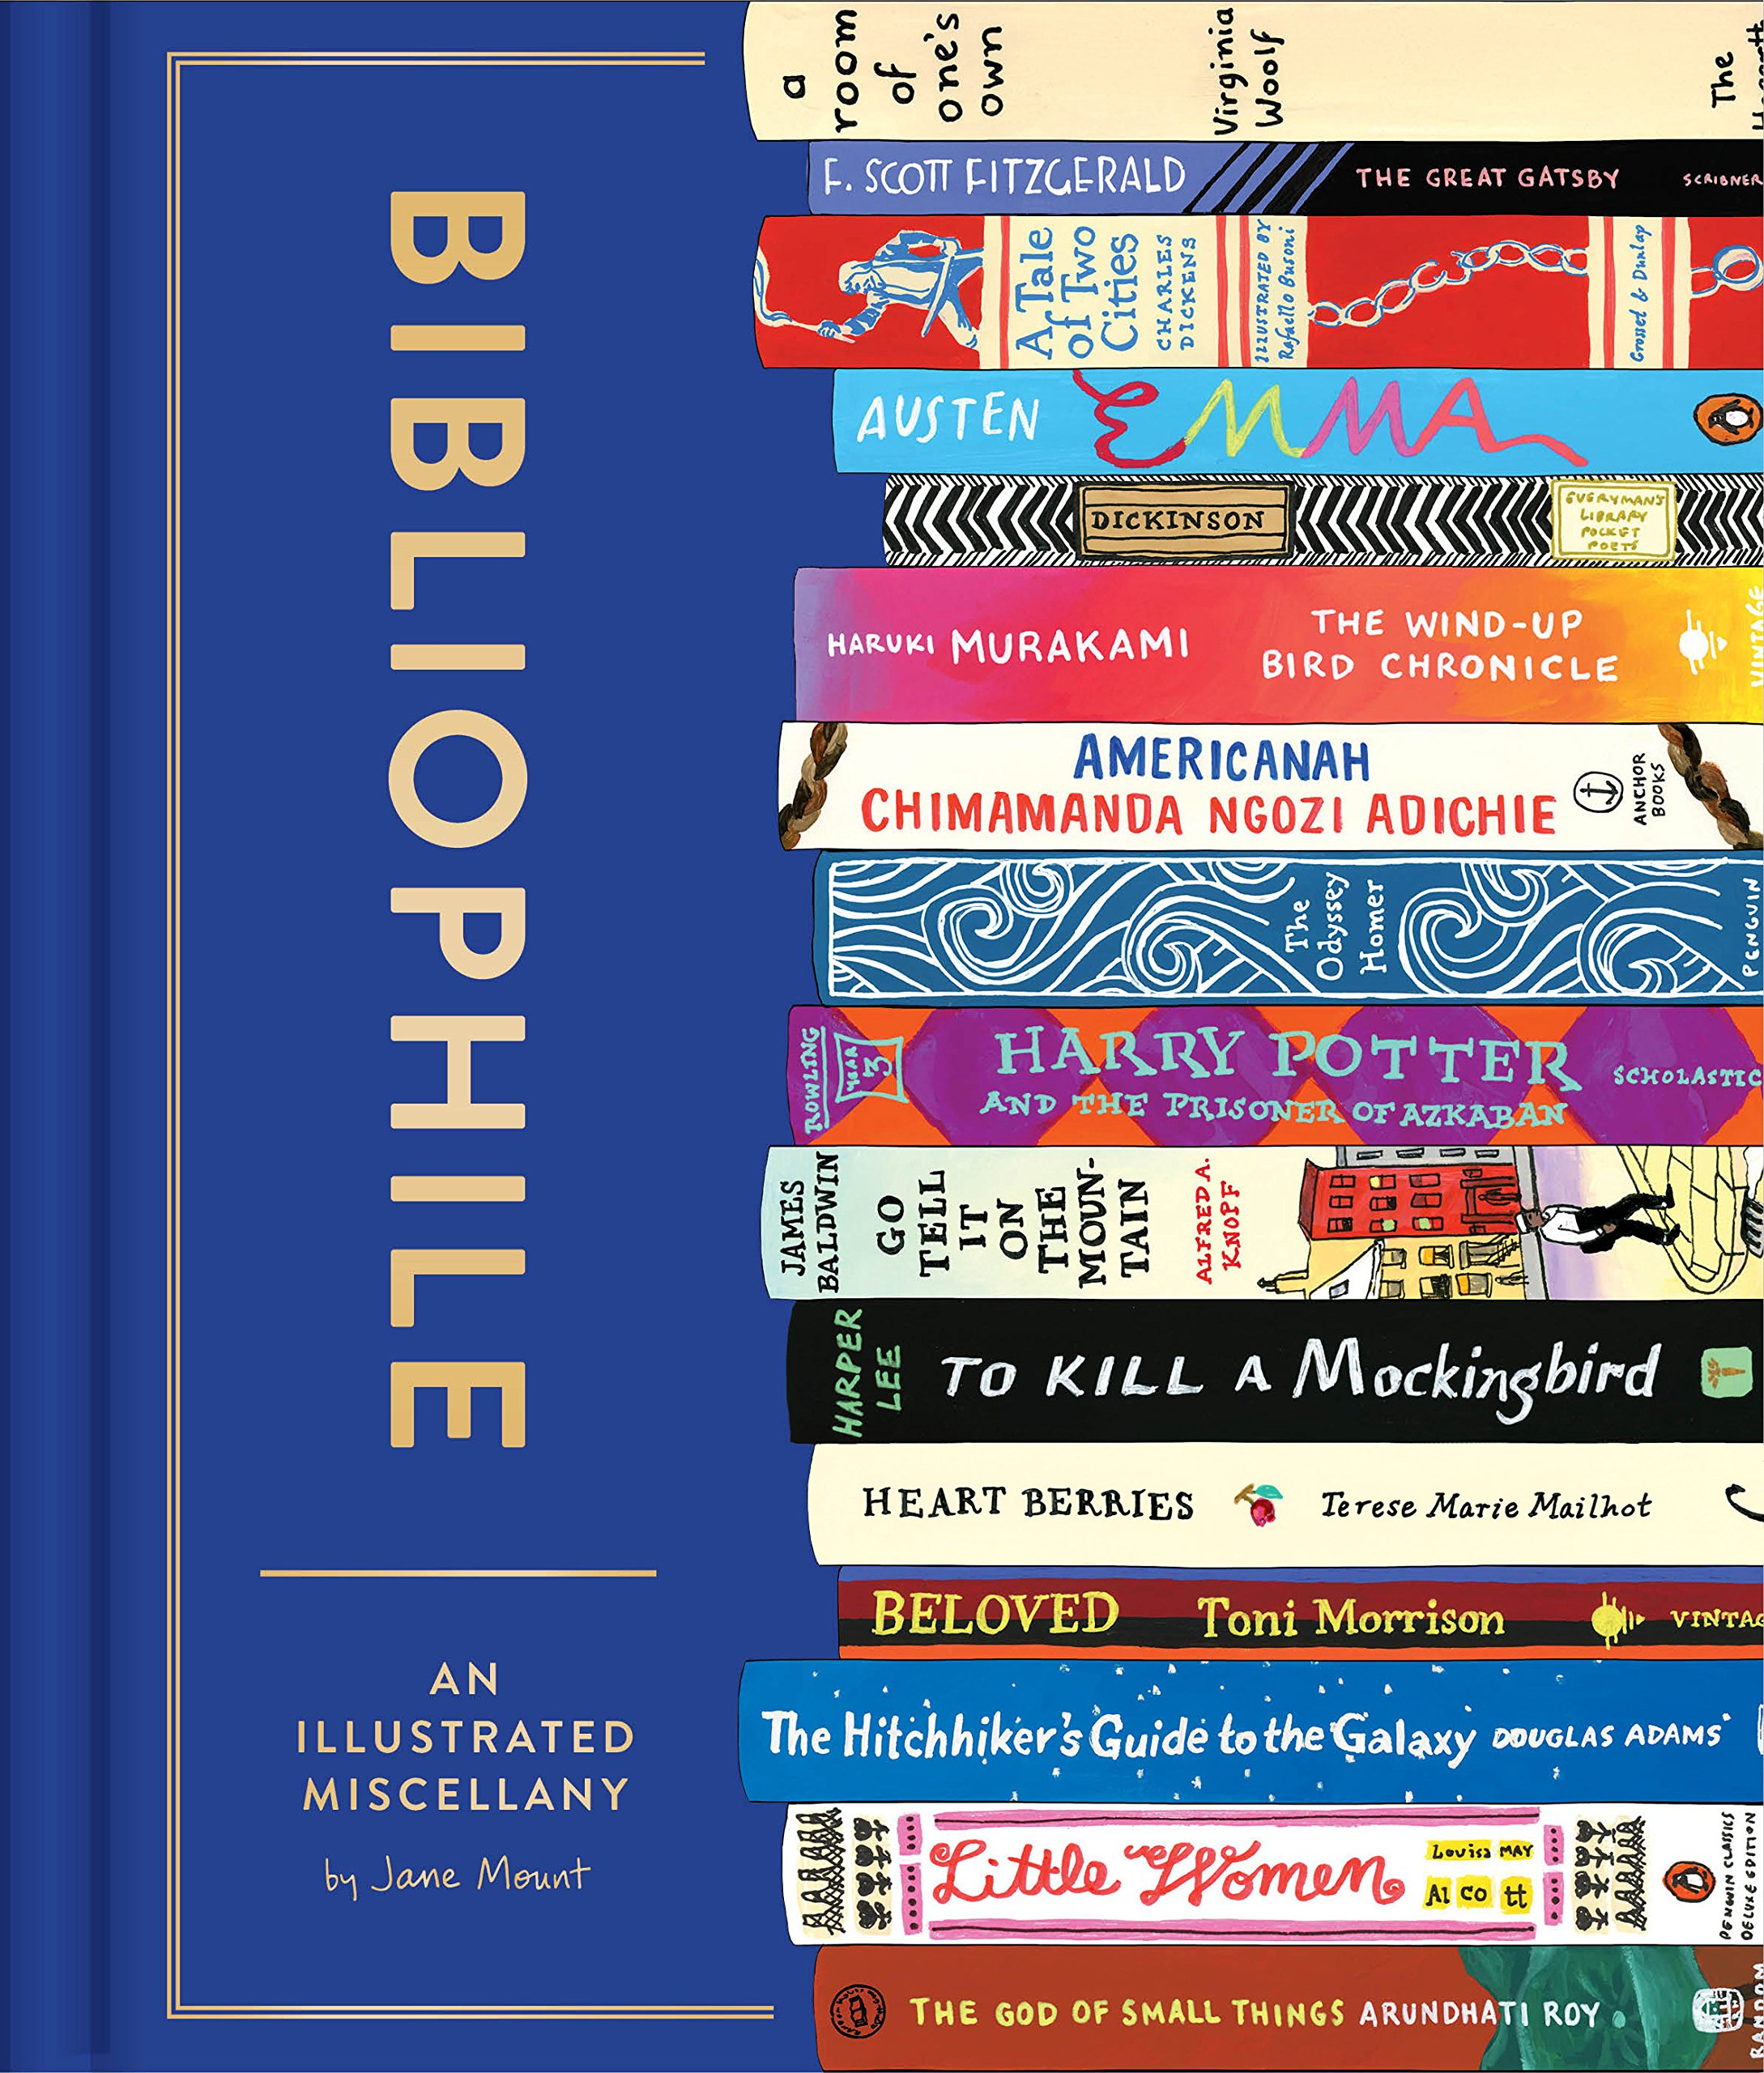 The cover of the book Bibliophile